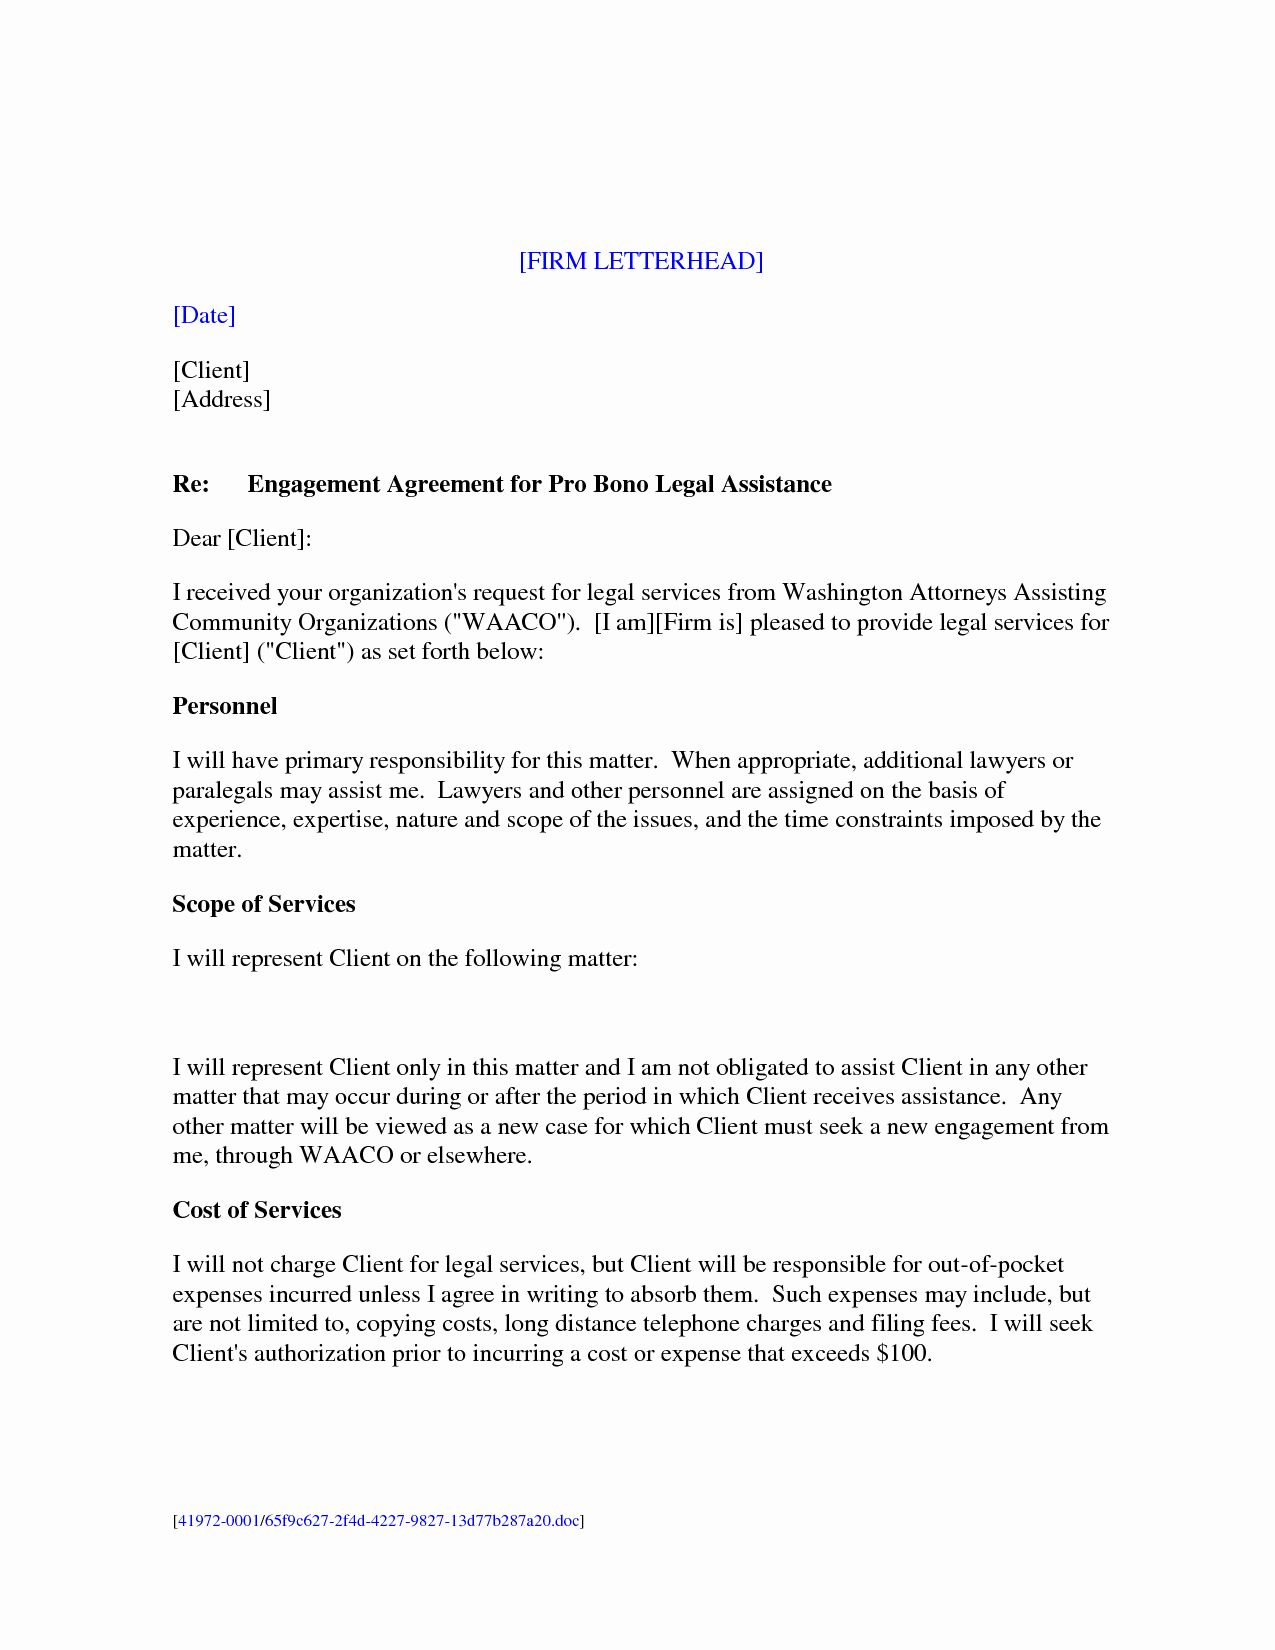 Attorney Client Letter Template Luxury Best S Of Sample Client Letter From Attorney Lawyer Legal Letter Letter Templates Formal Business Letter Sample attorney letter of representation